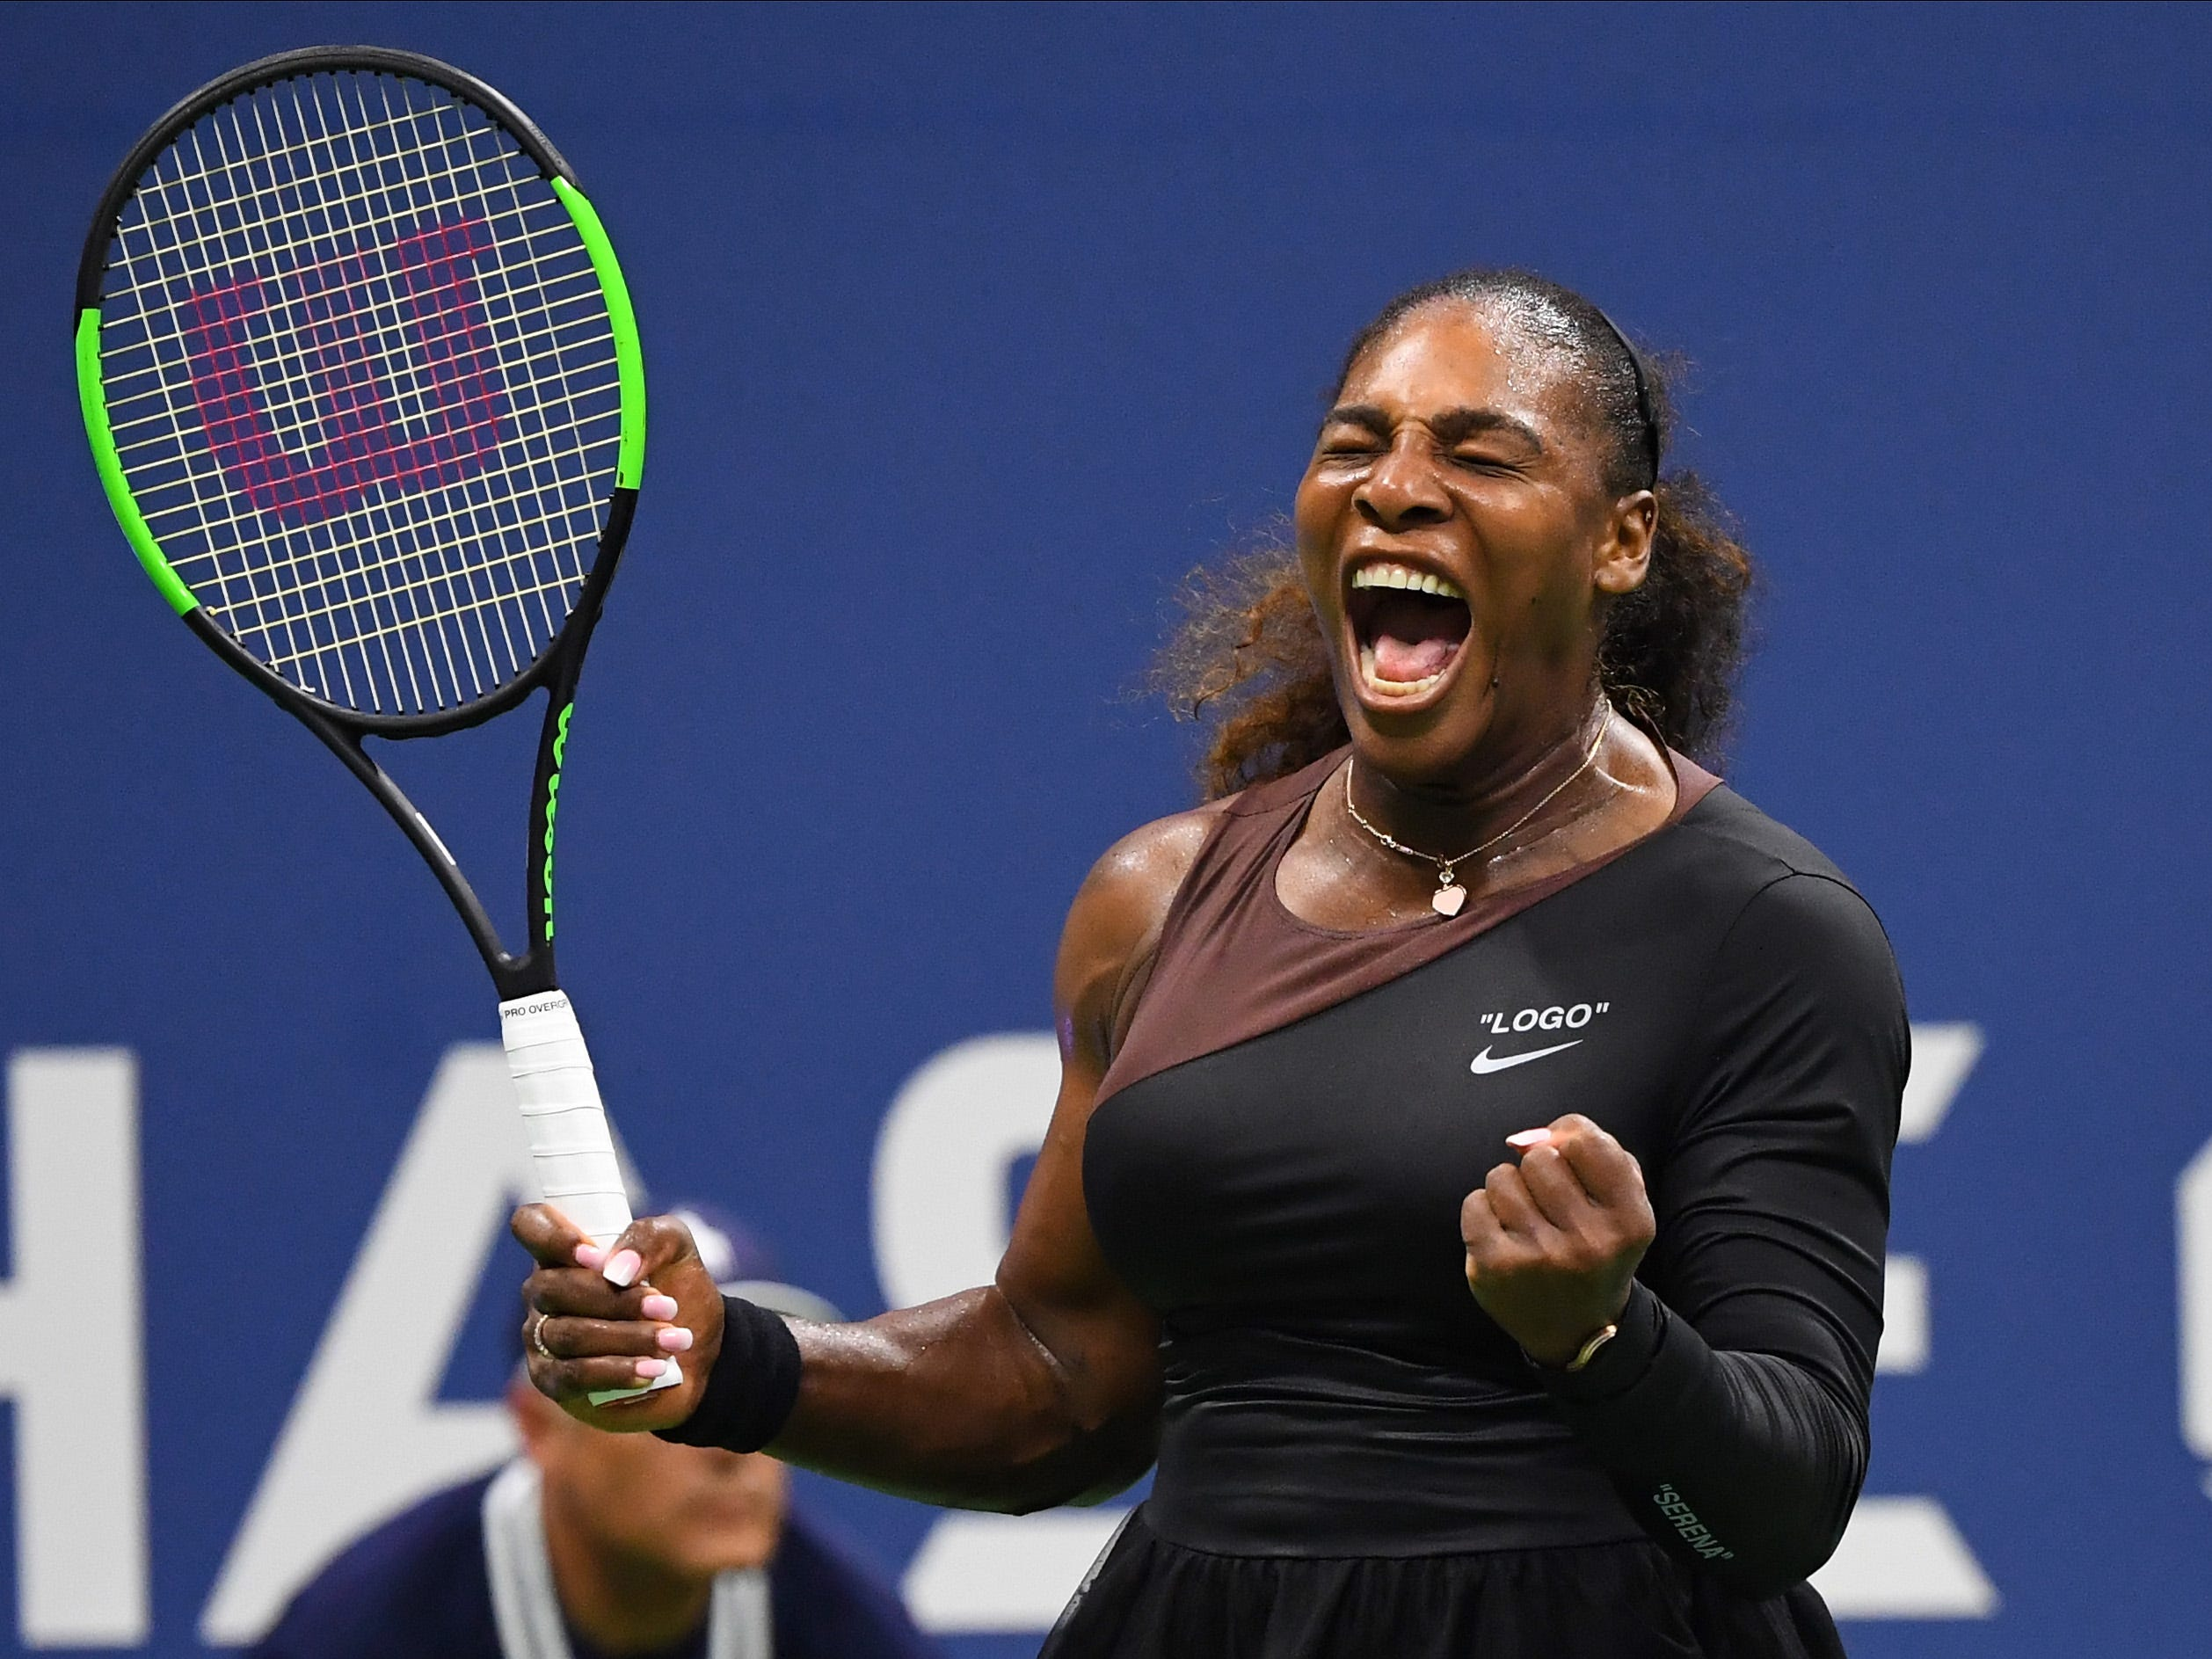 Serena Williams, in her return to the US Open (she missed last year because of the soon-to-arrive birth of her daughter), had not trouble with Magda Linette of Poland in a 6-4, 6-0 win.